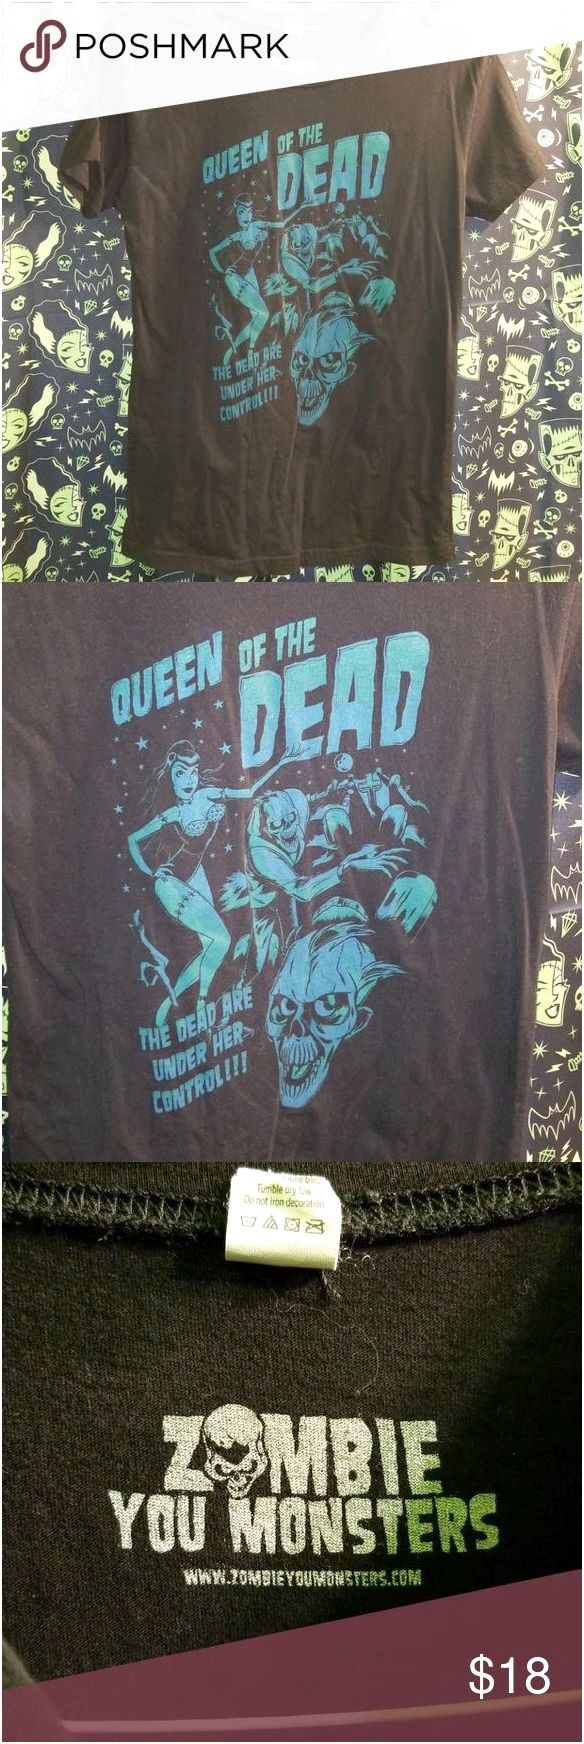 zombie pin up girl t shirts